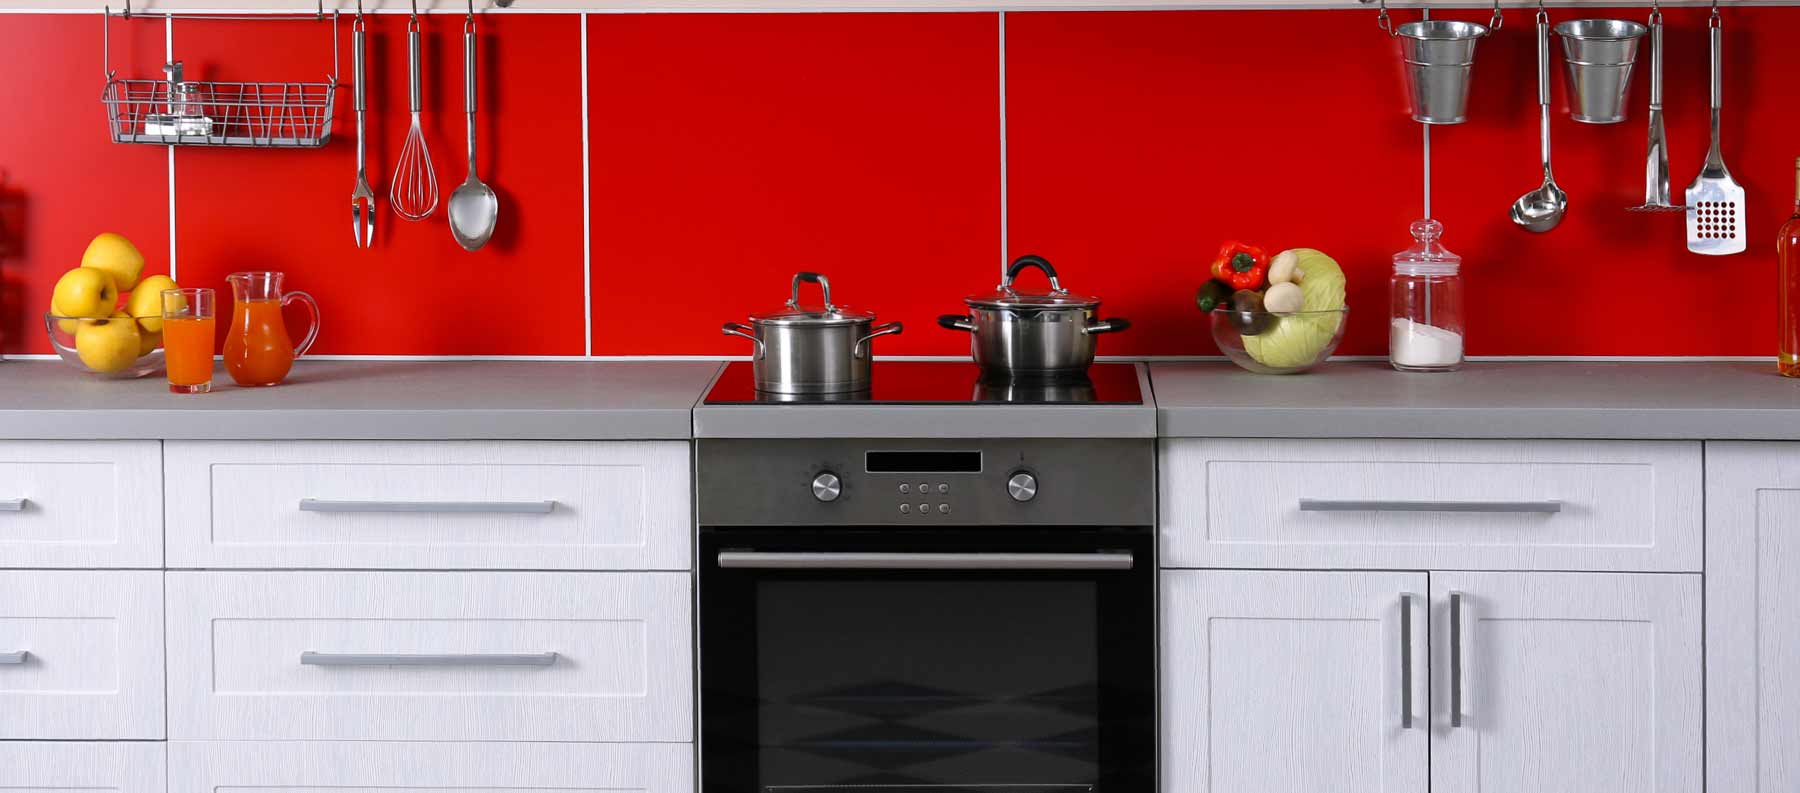 You Can Actually Save a Lot of Your Existing Kitchen